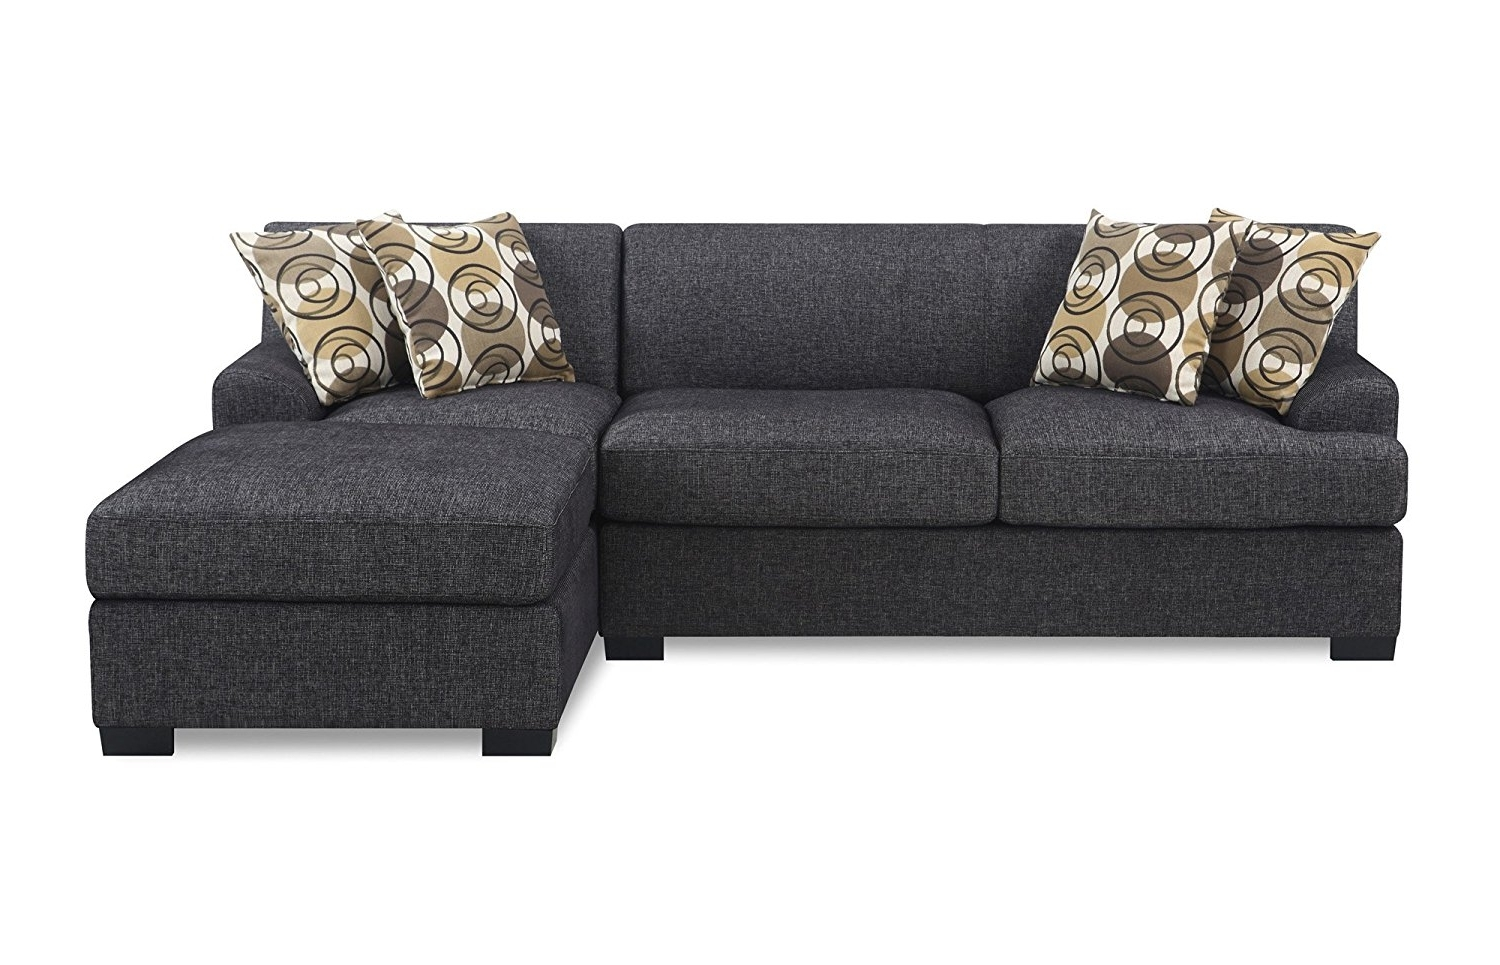 Loveseats With Chaise Throughout Most Current Amazon: Bobkona Benford 2 Piece Chaise Loveseat Sectional Sofa (View 4 of 15)